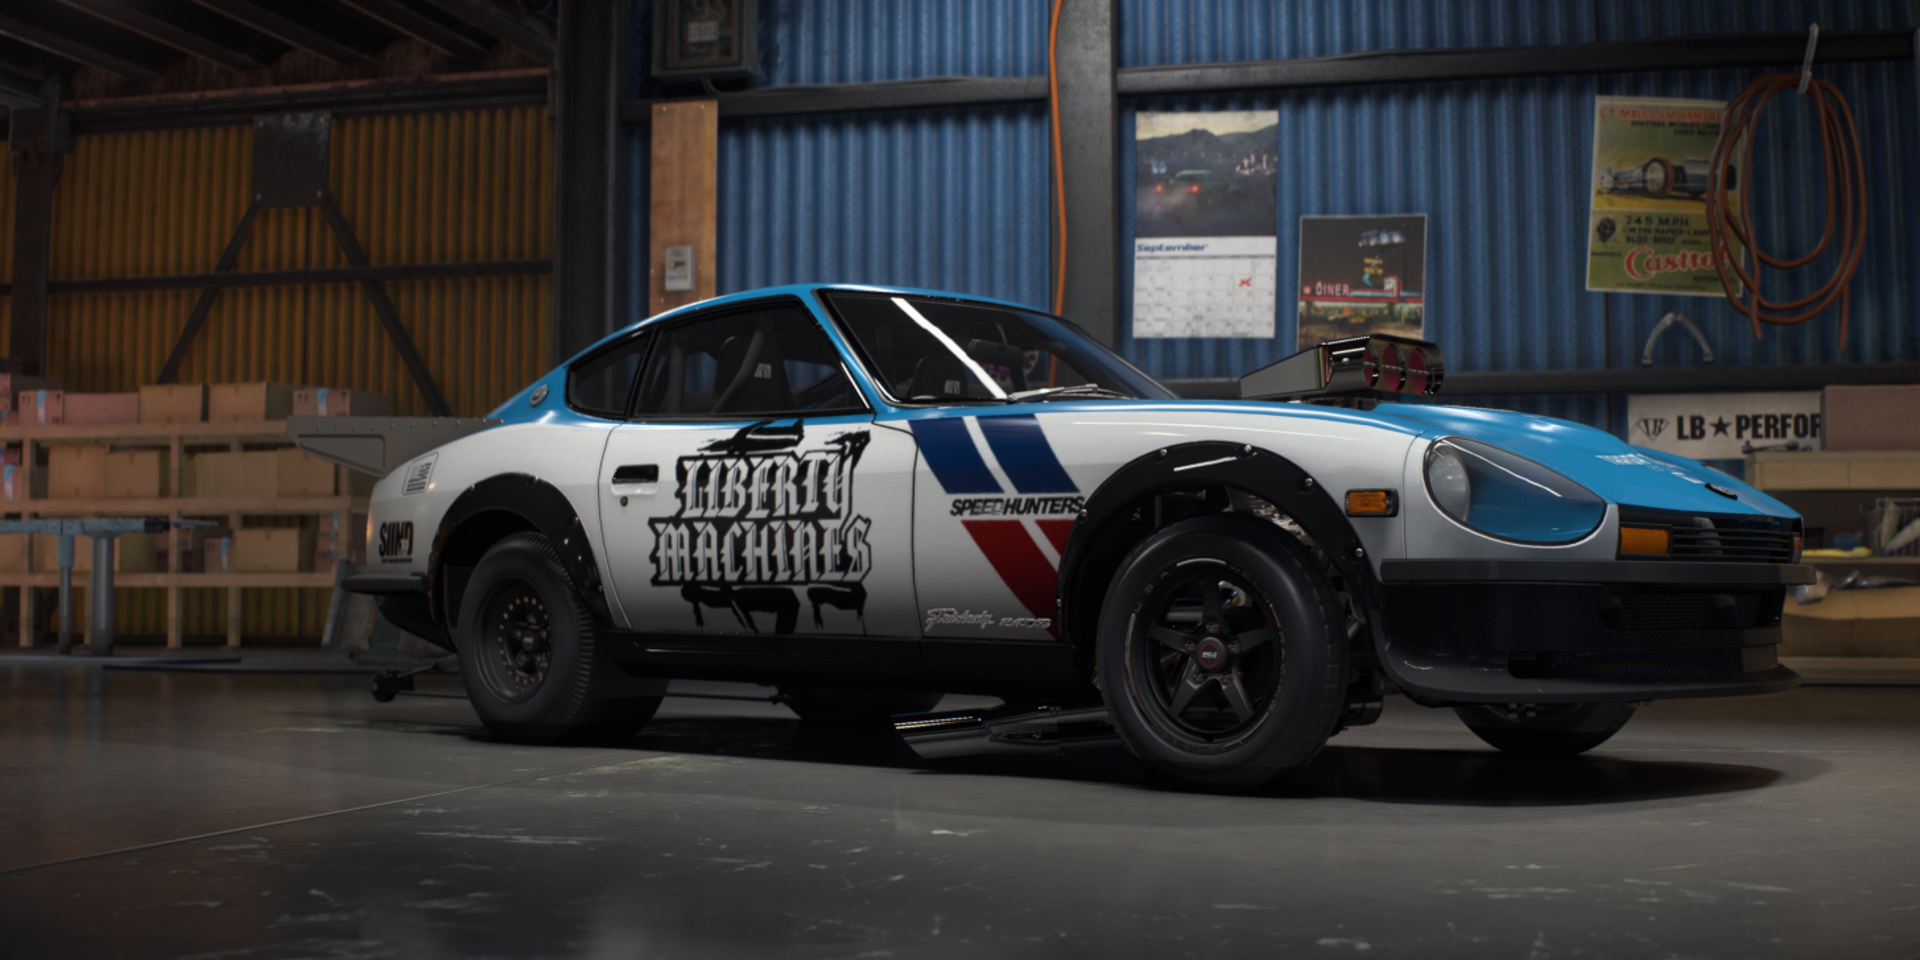 Need For Speed Payback Build Of The Week 1971 Nissan Fairlady